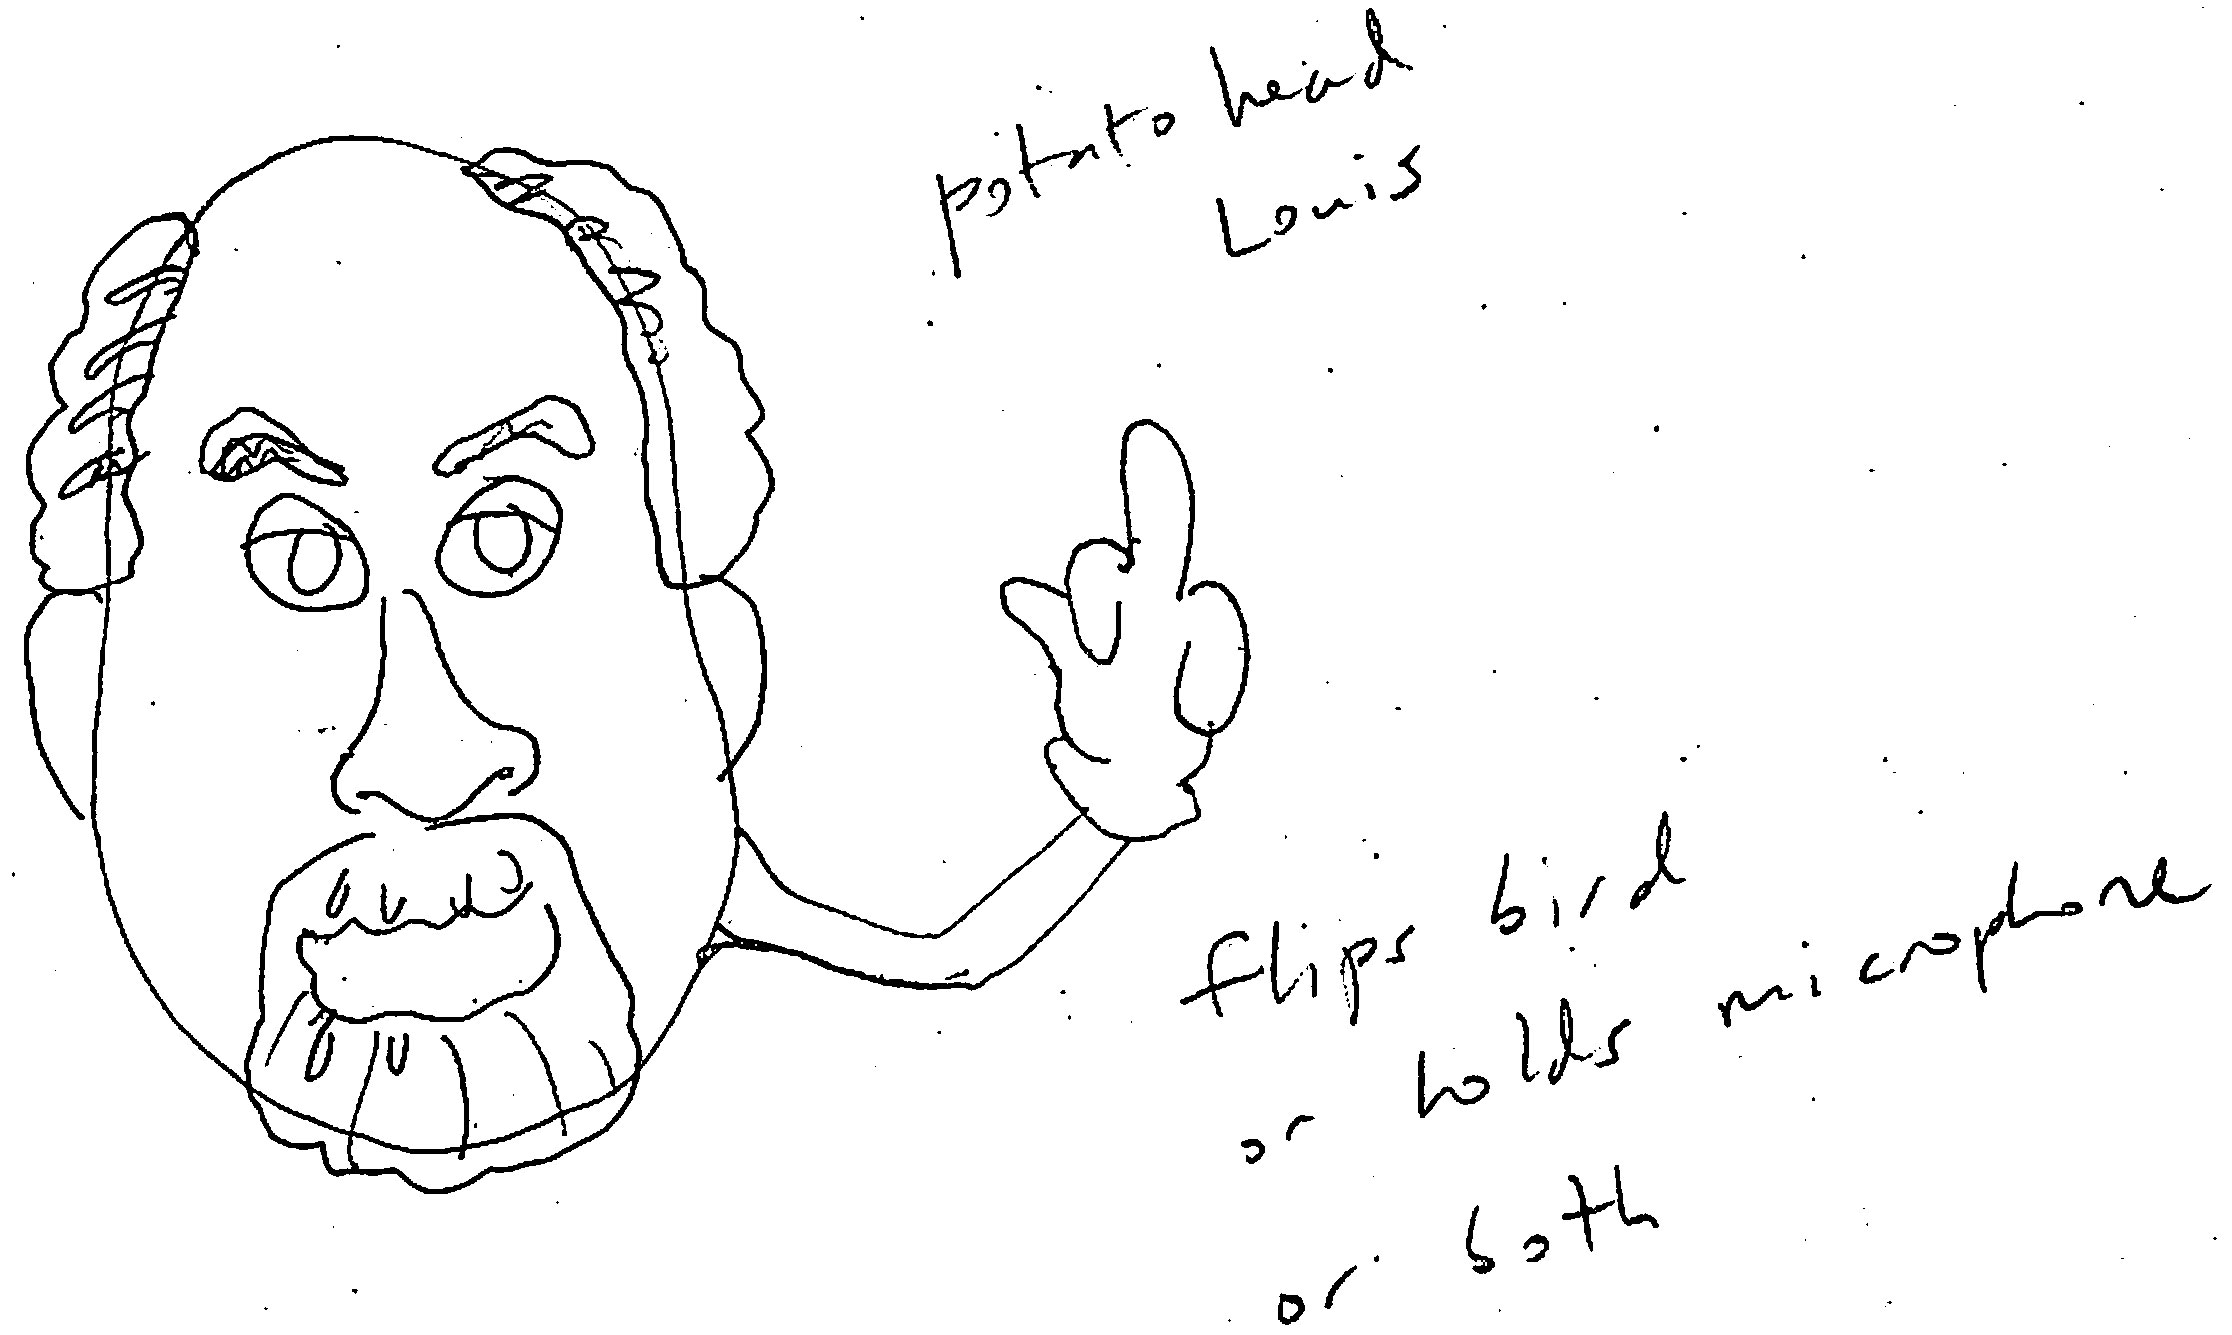 Complete (for now): Louis CK London UK - image 15 - student project